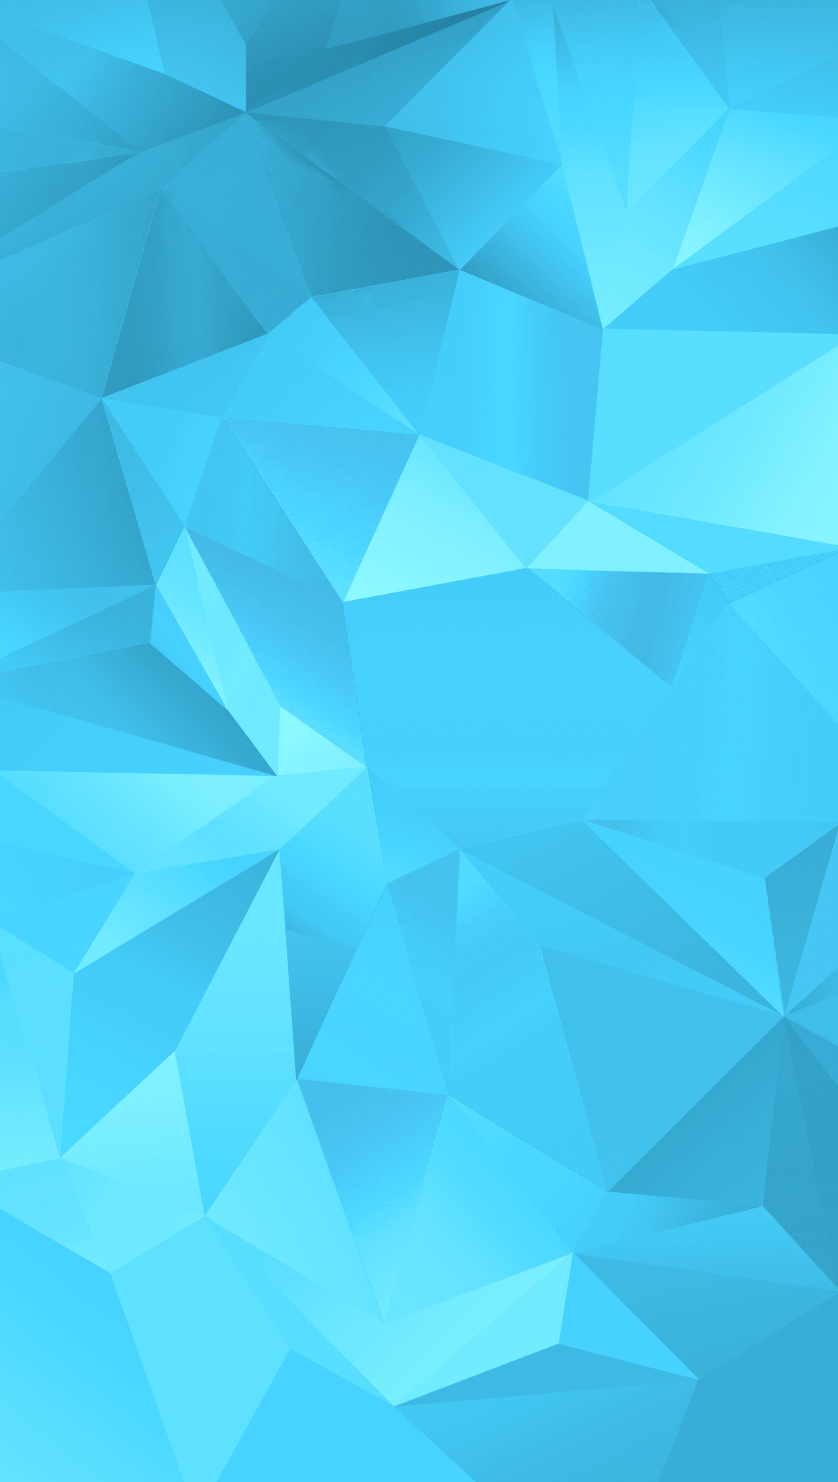 Samsung Galaxy S5 Hd Wallpapers For Free Download Here